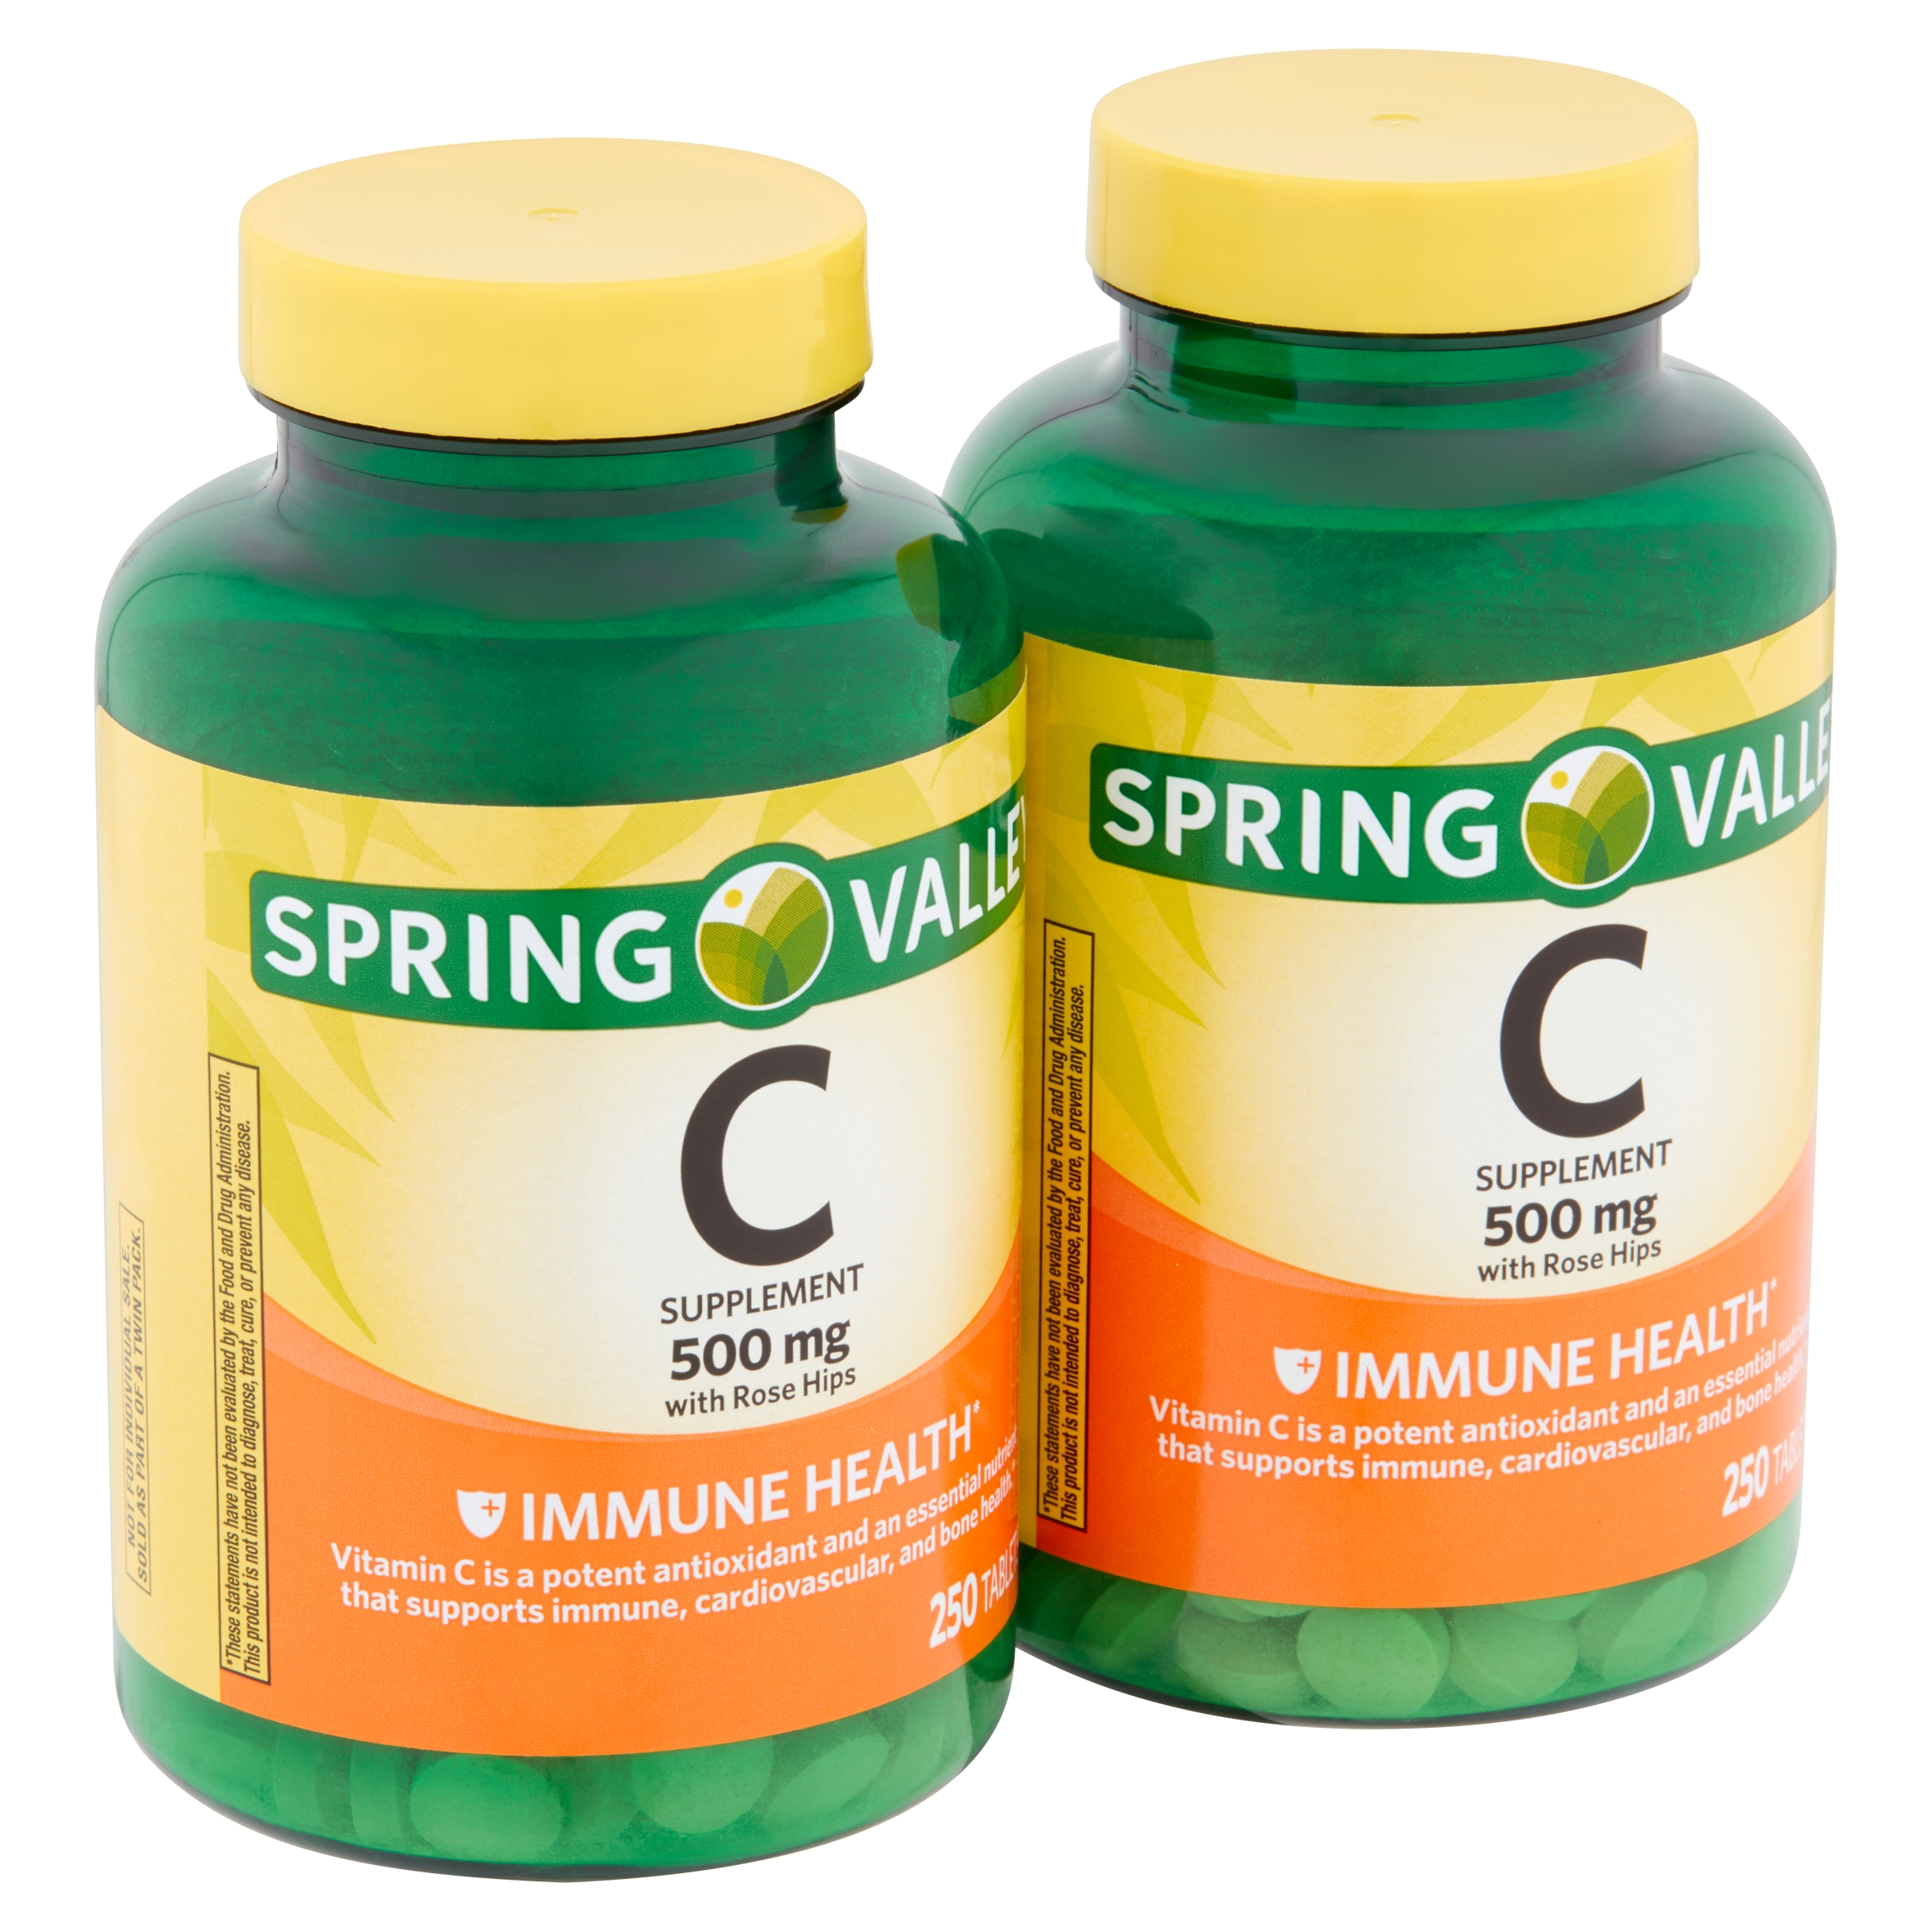 Spring Valley C Supplement with Rose Hips Tablets Twin Pack, 500 mg, 250 count, 2 pack